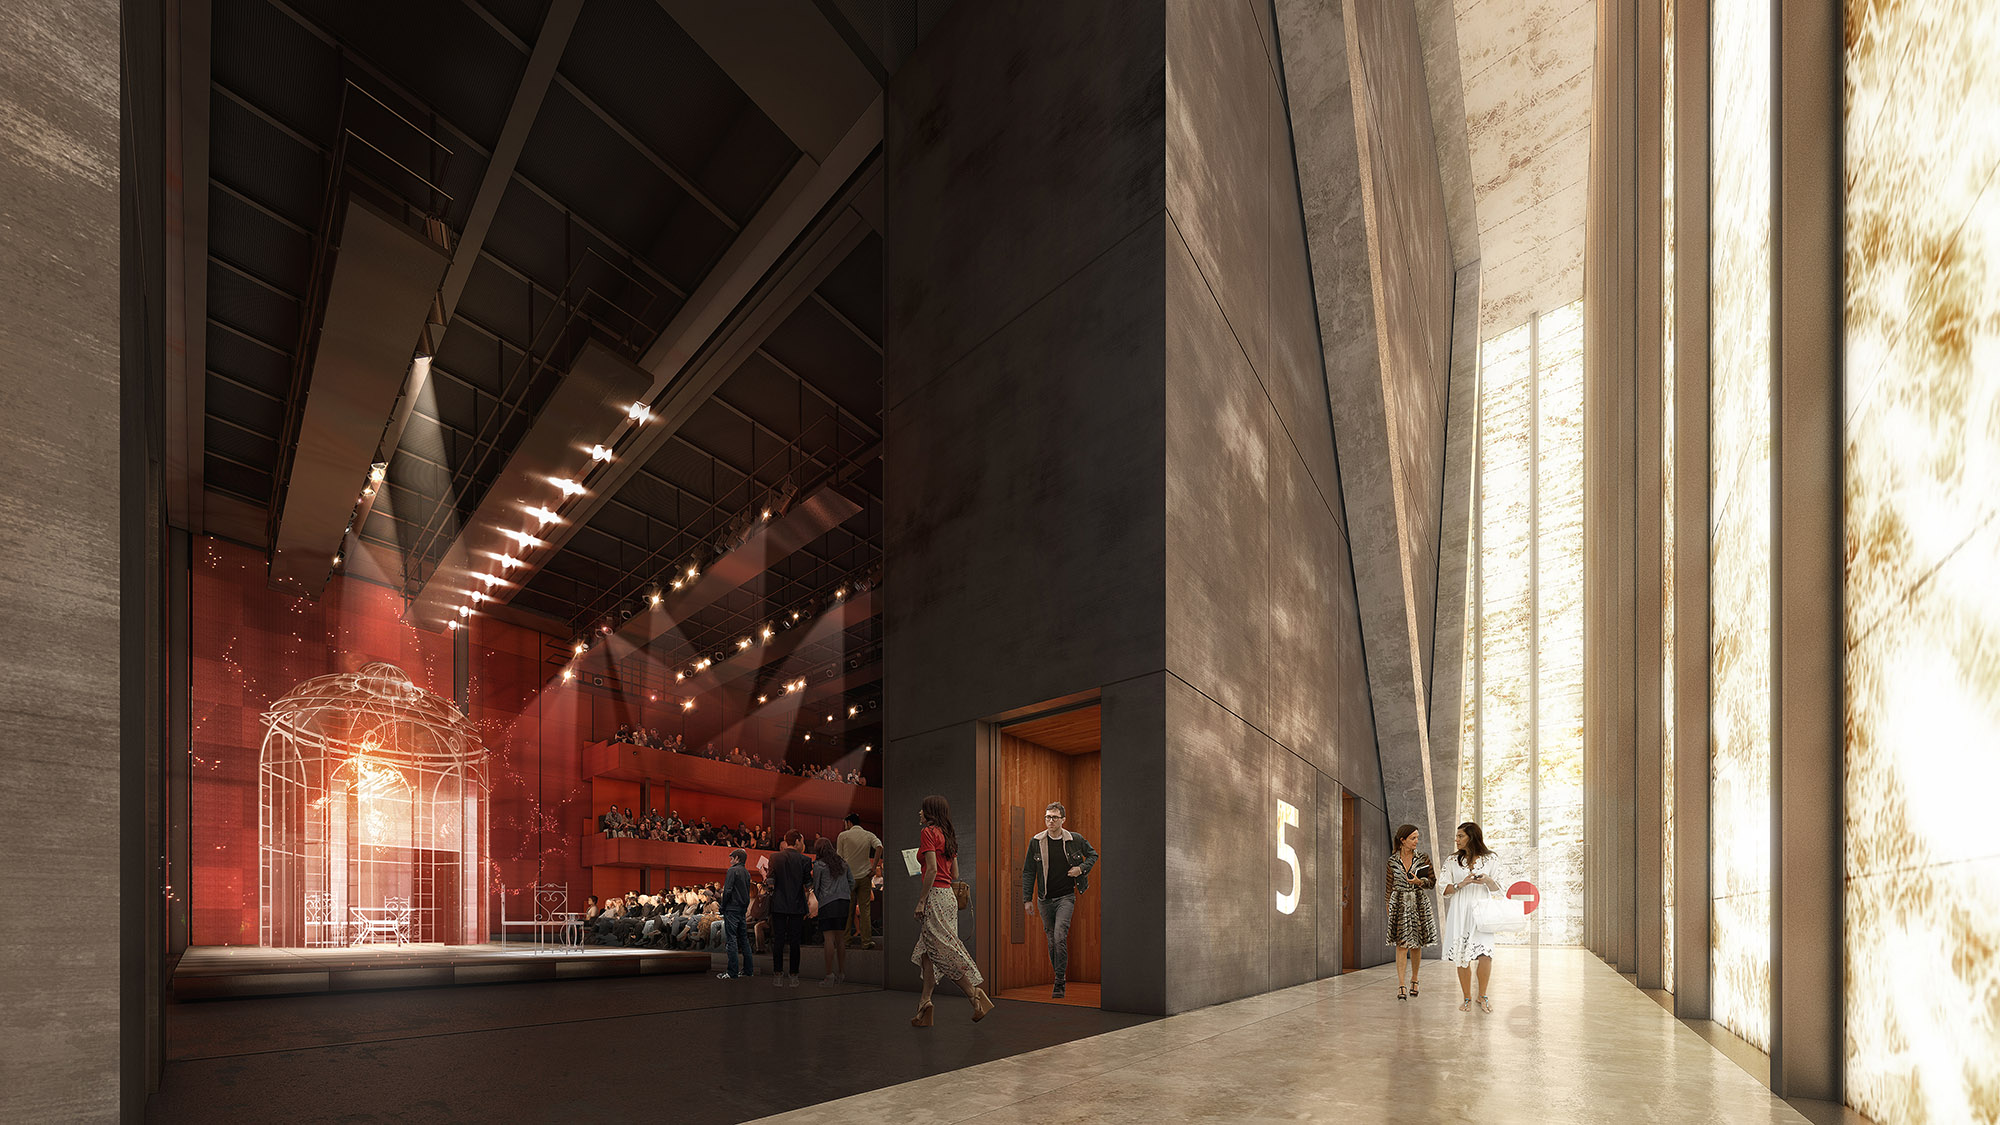 Ronald O. Perelman Center for the Performing Arts at the World Trade Center